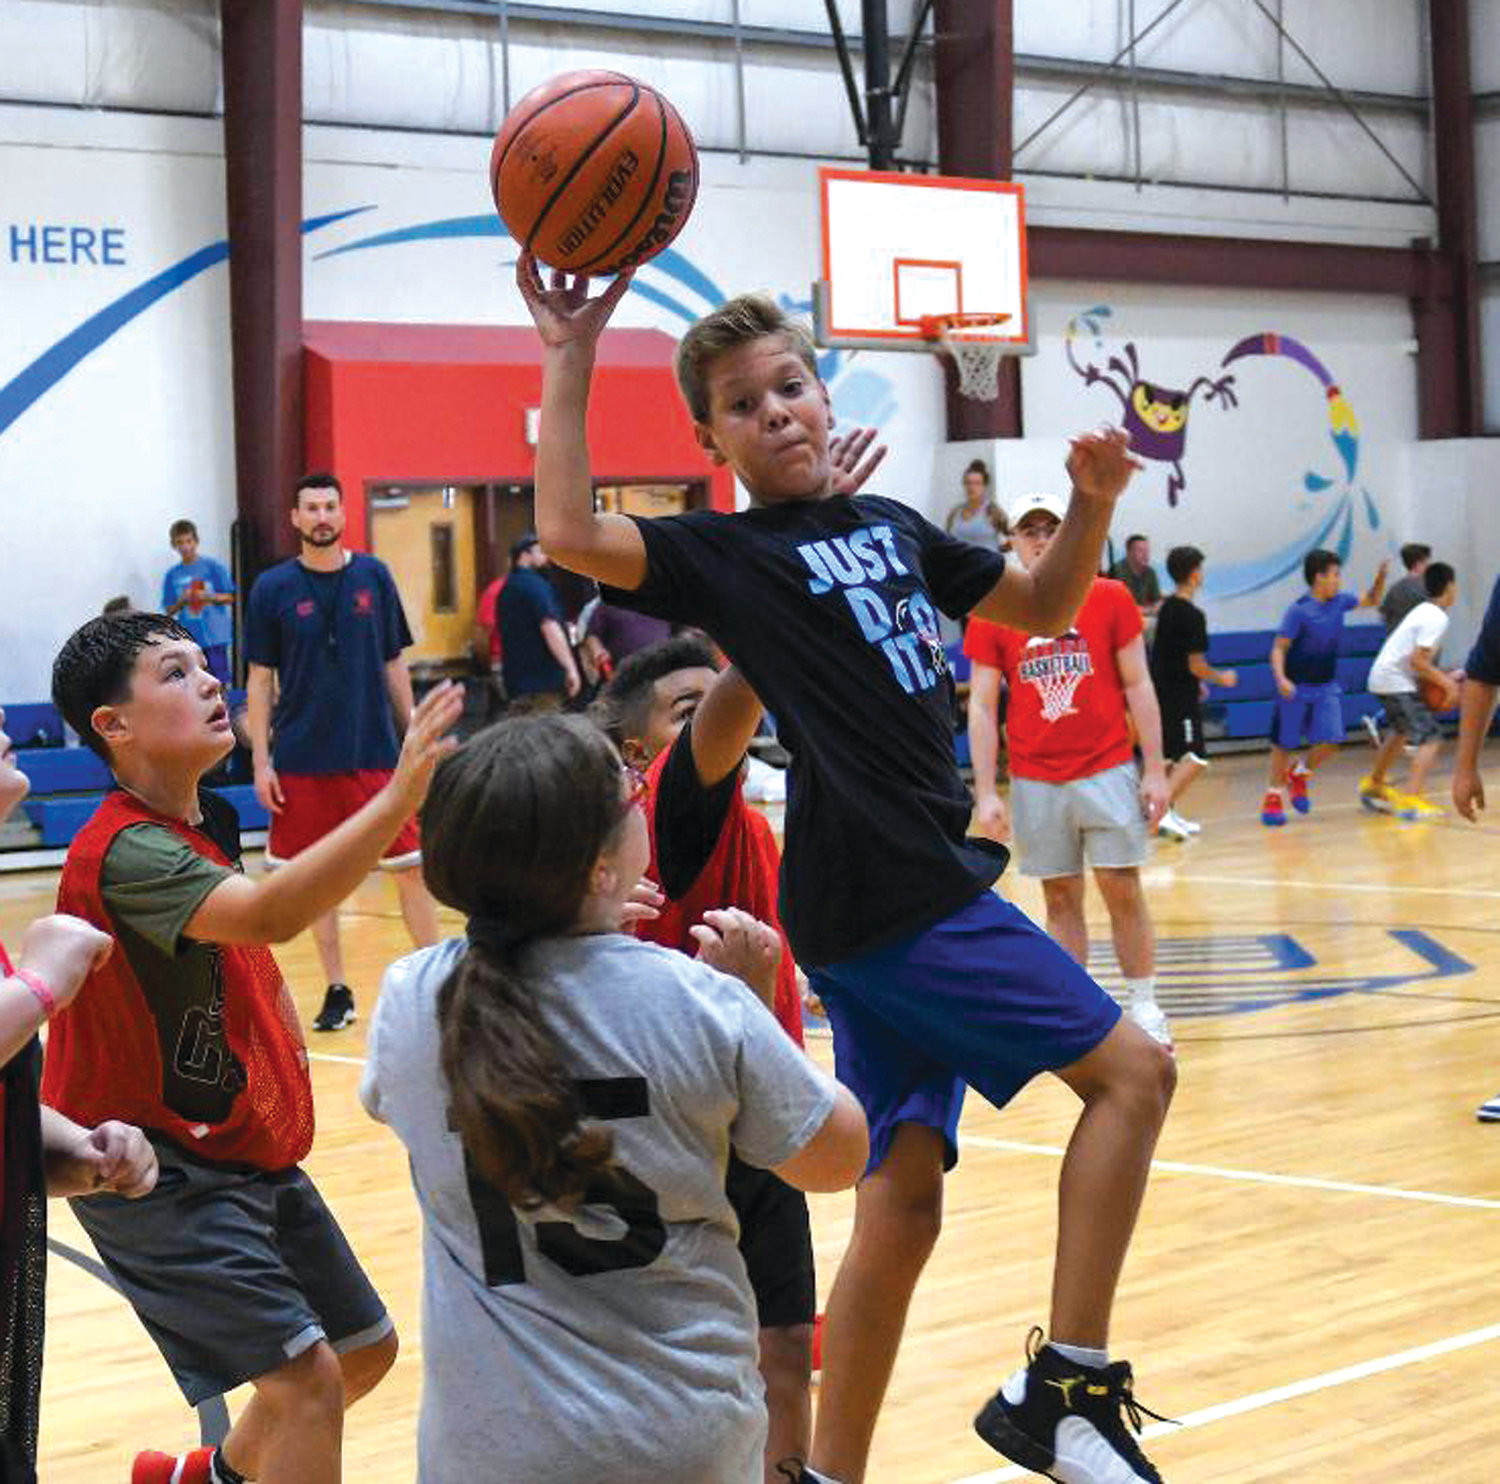 THROUGH TRAFFIC: Andrew Ramos works through defenders at the Warwick basketball clinic.